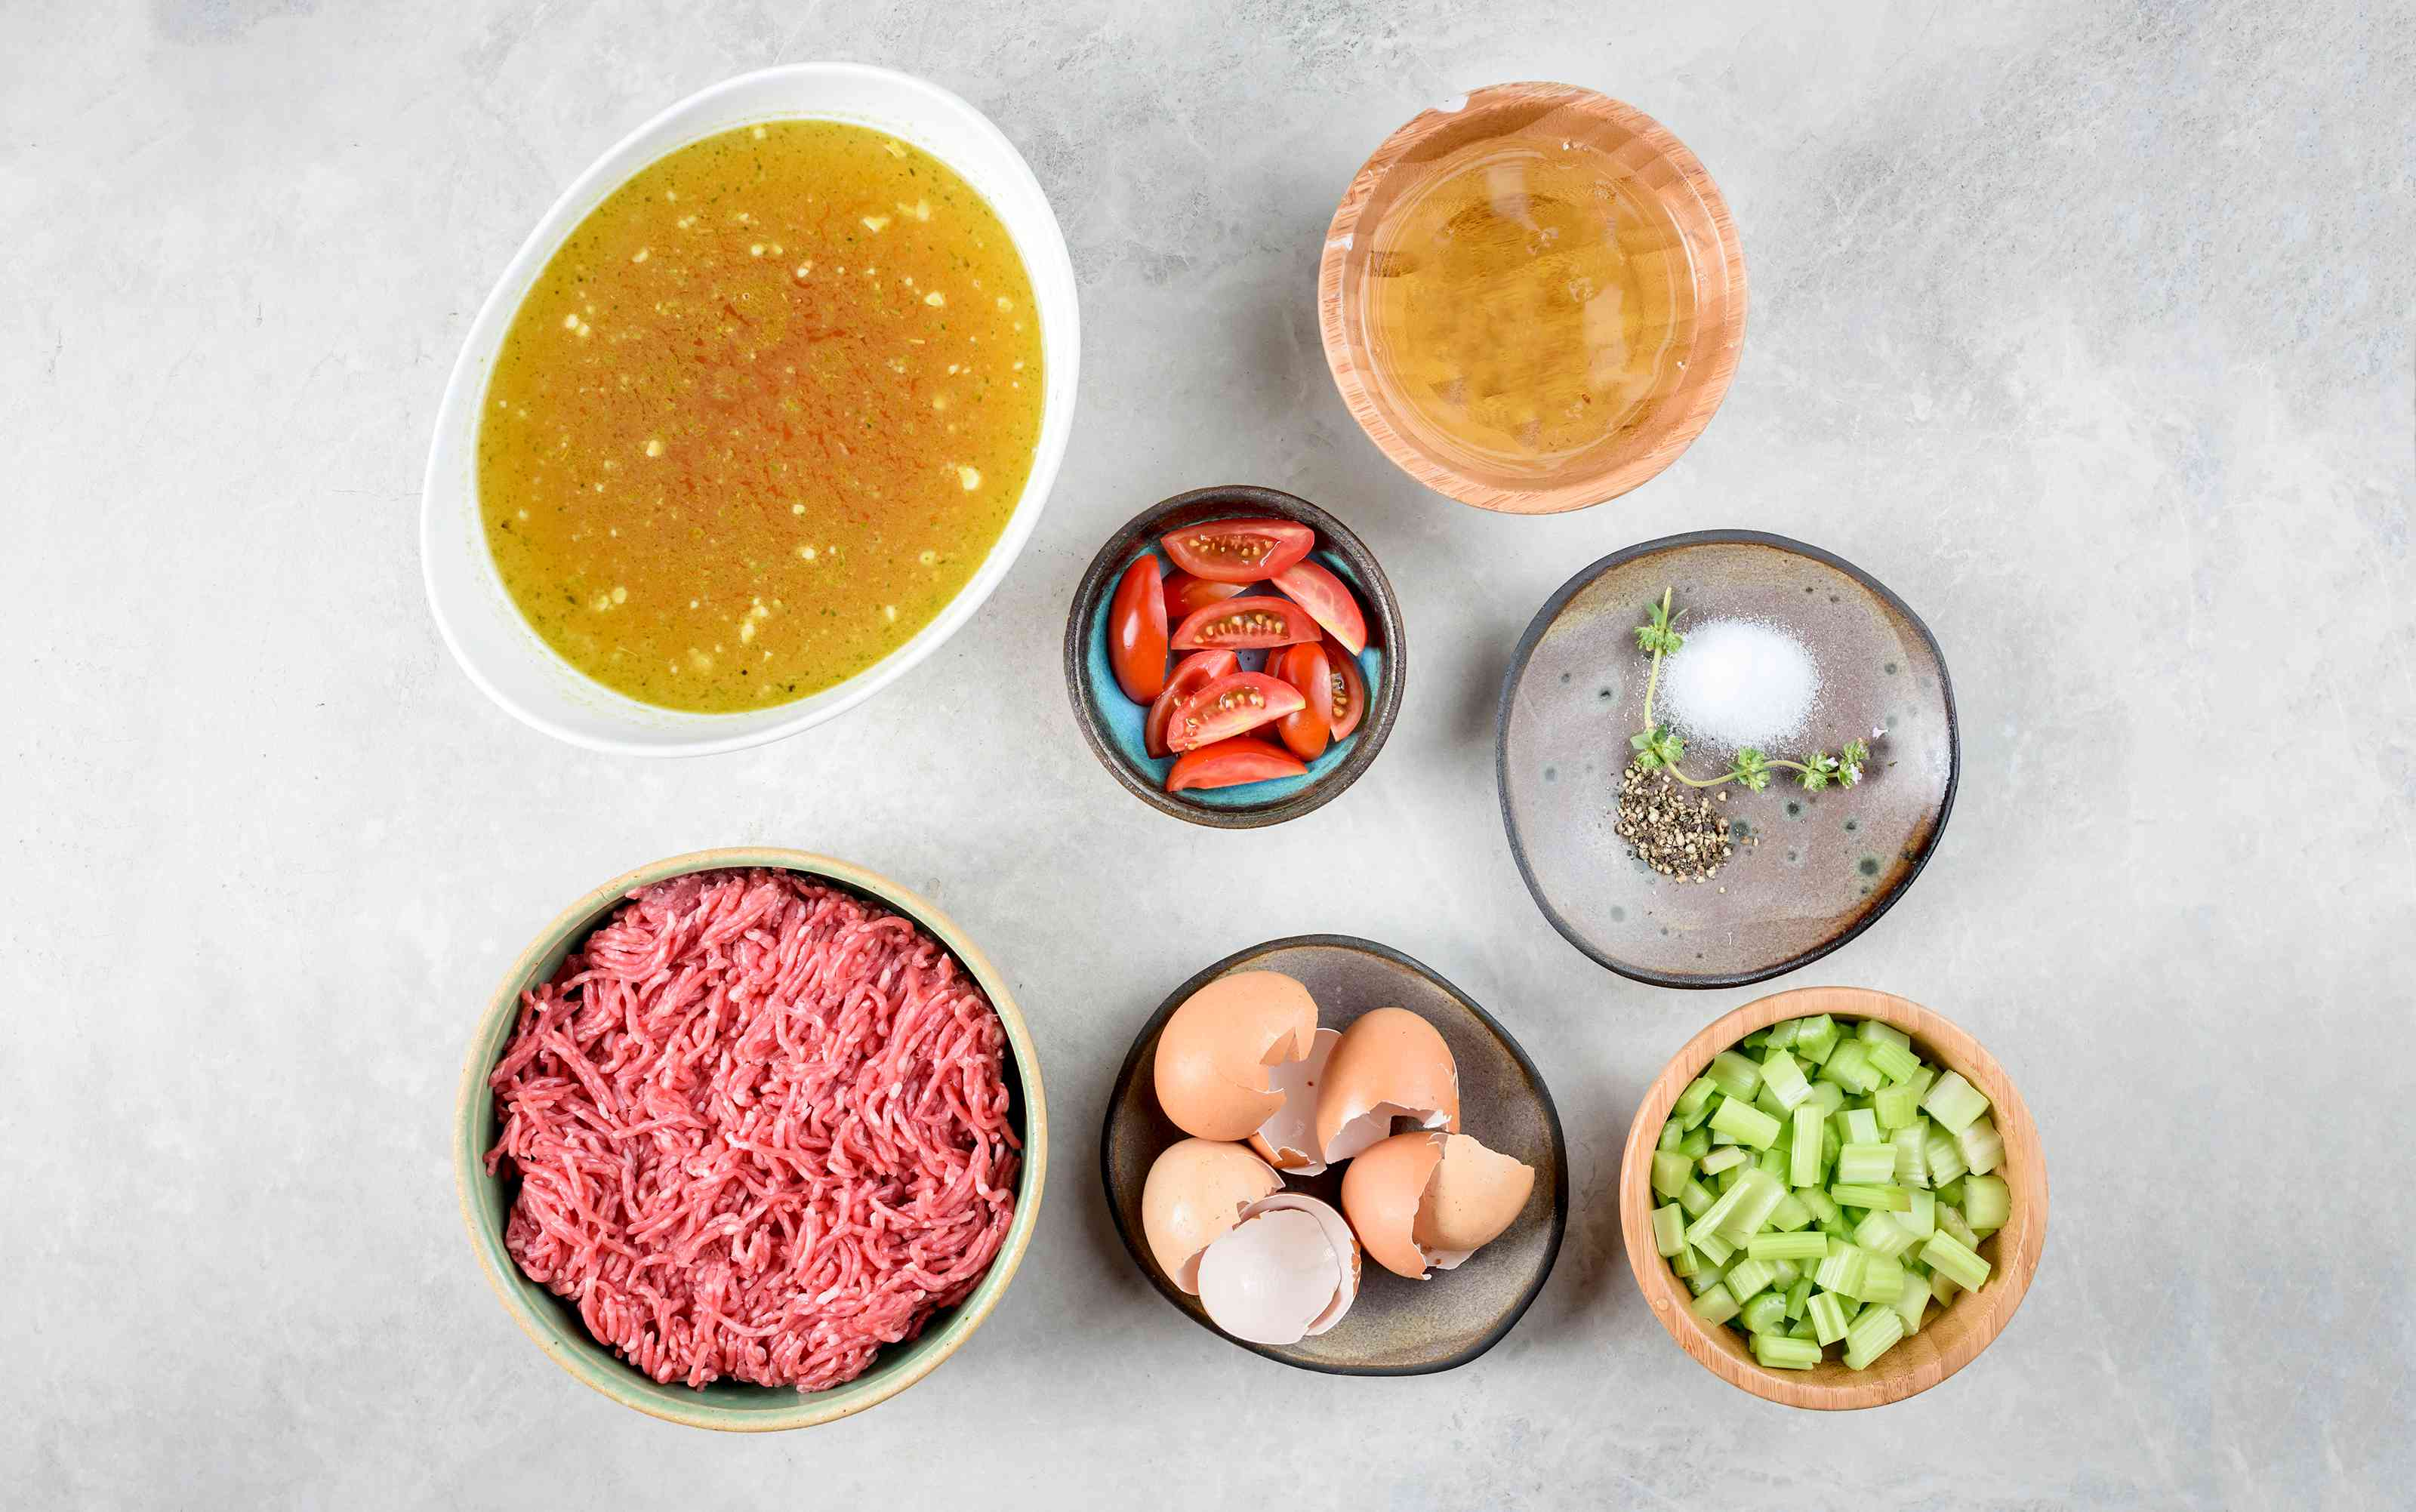 Ingredients for beef consommé